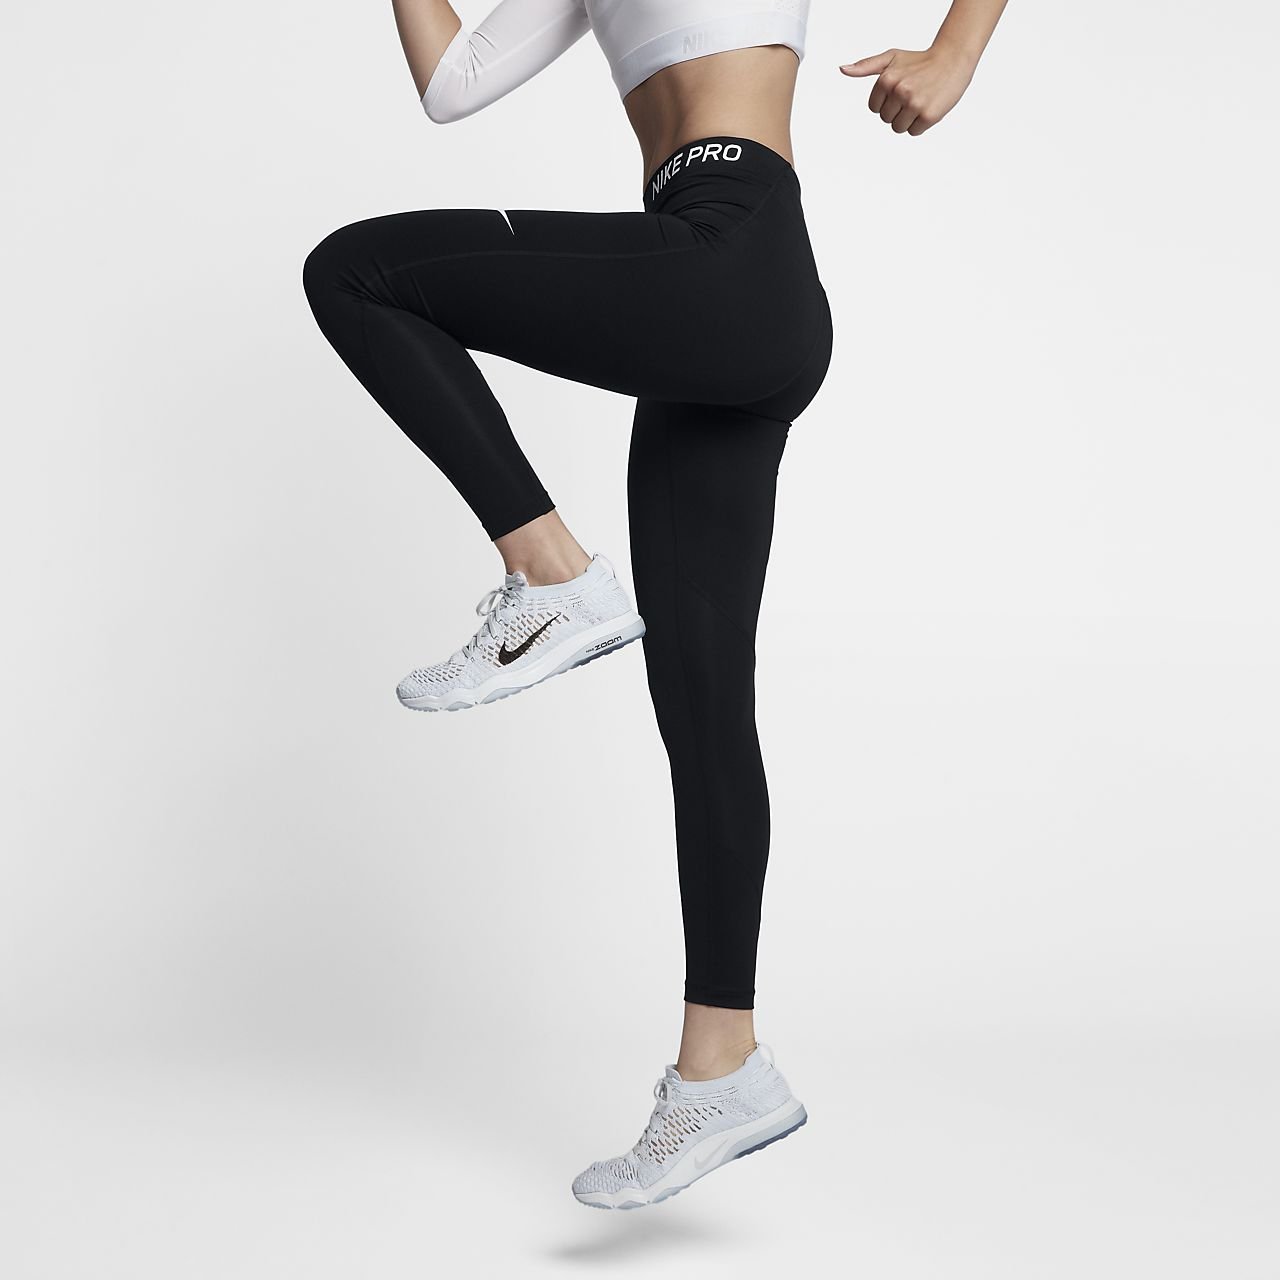 d001b71260 Nike Pro Women s Mid-Rise Training Tights. Nike.com